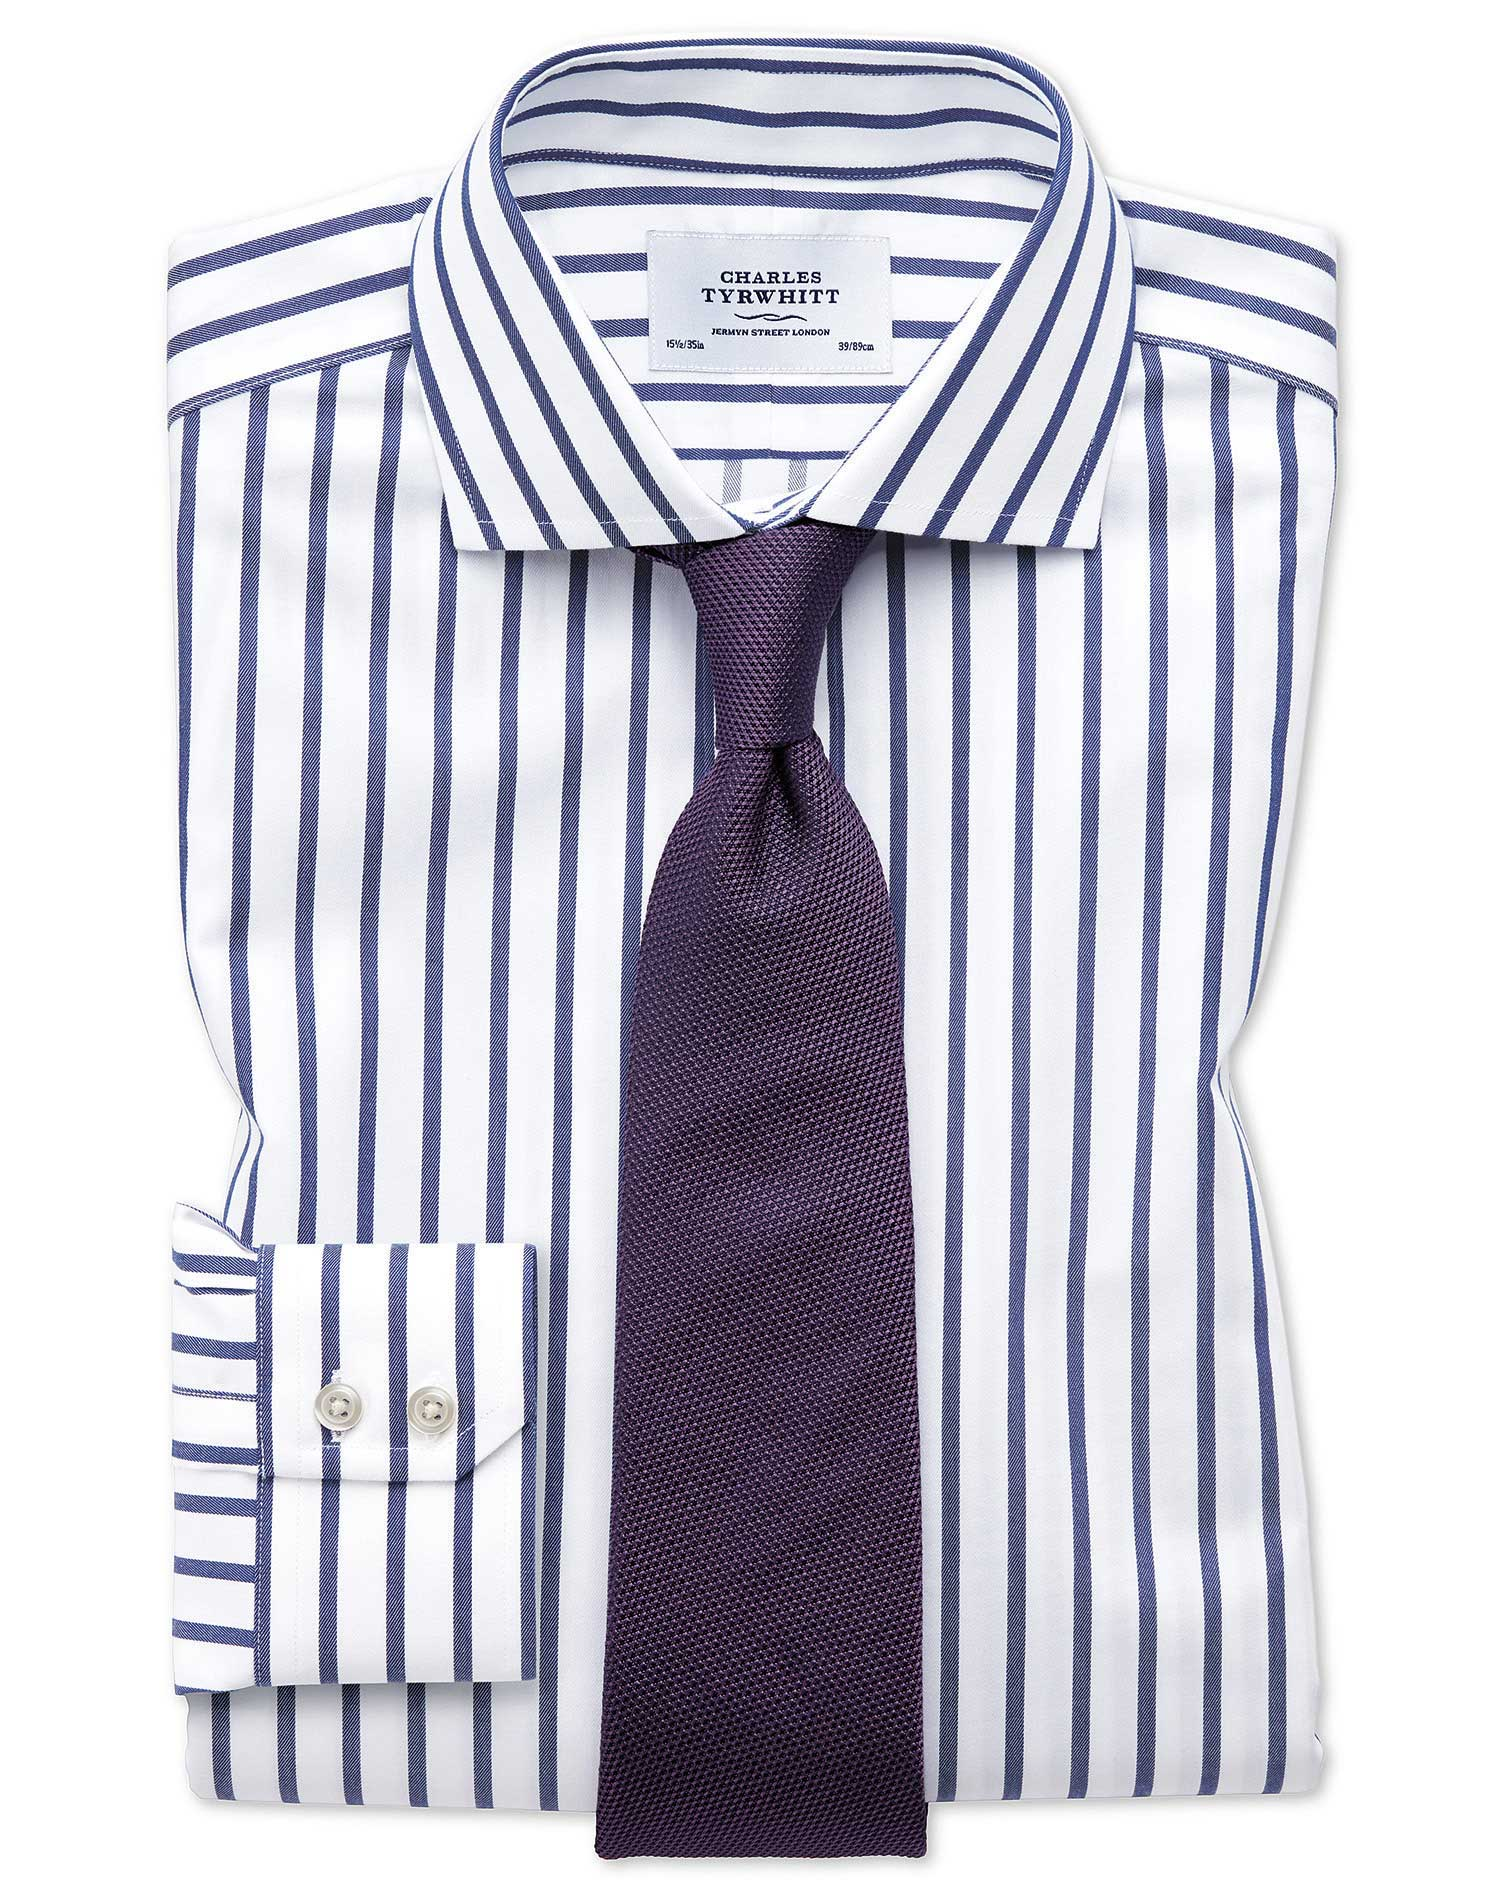 Slim Fit Cutaway Non-Iron Bengal Wide Stripe White and Blue Cotton Formal Shirt Double Cuff Size 16/